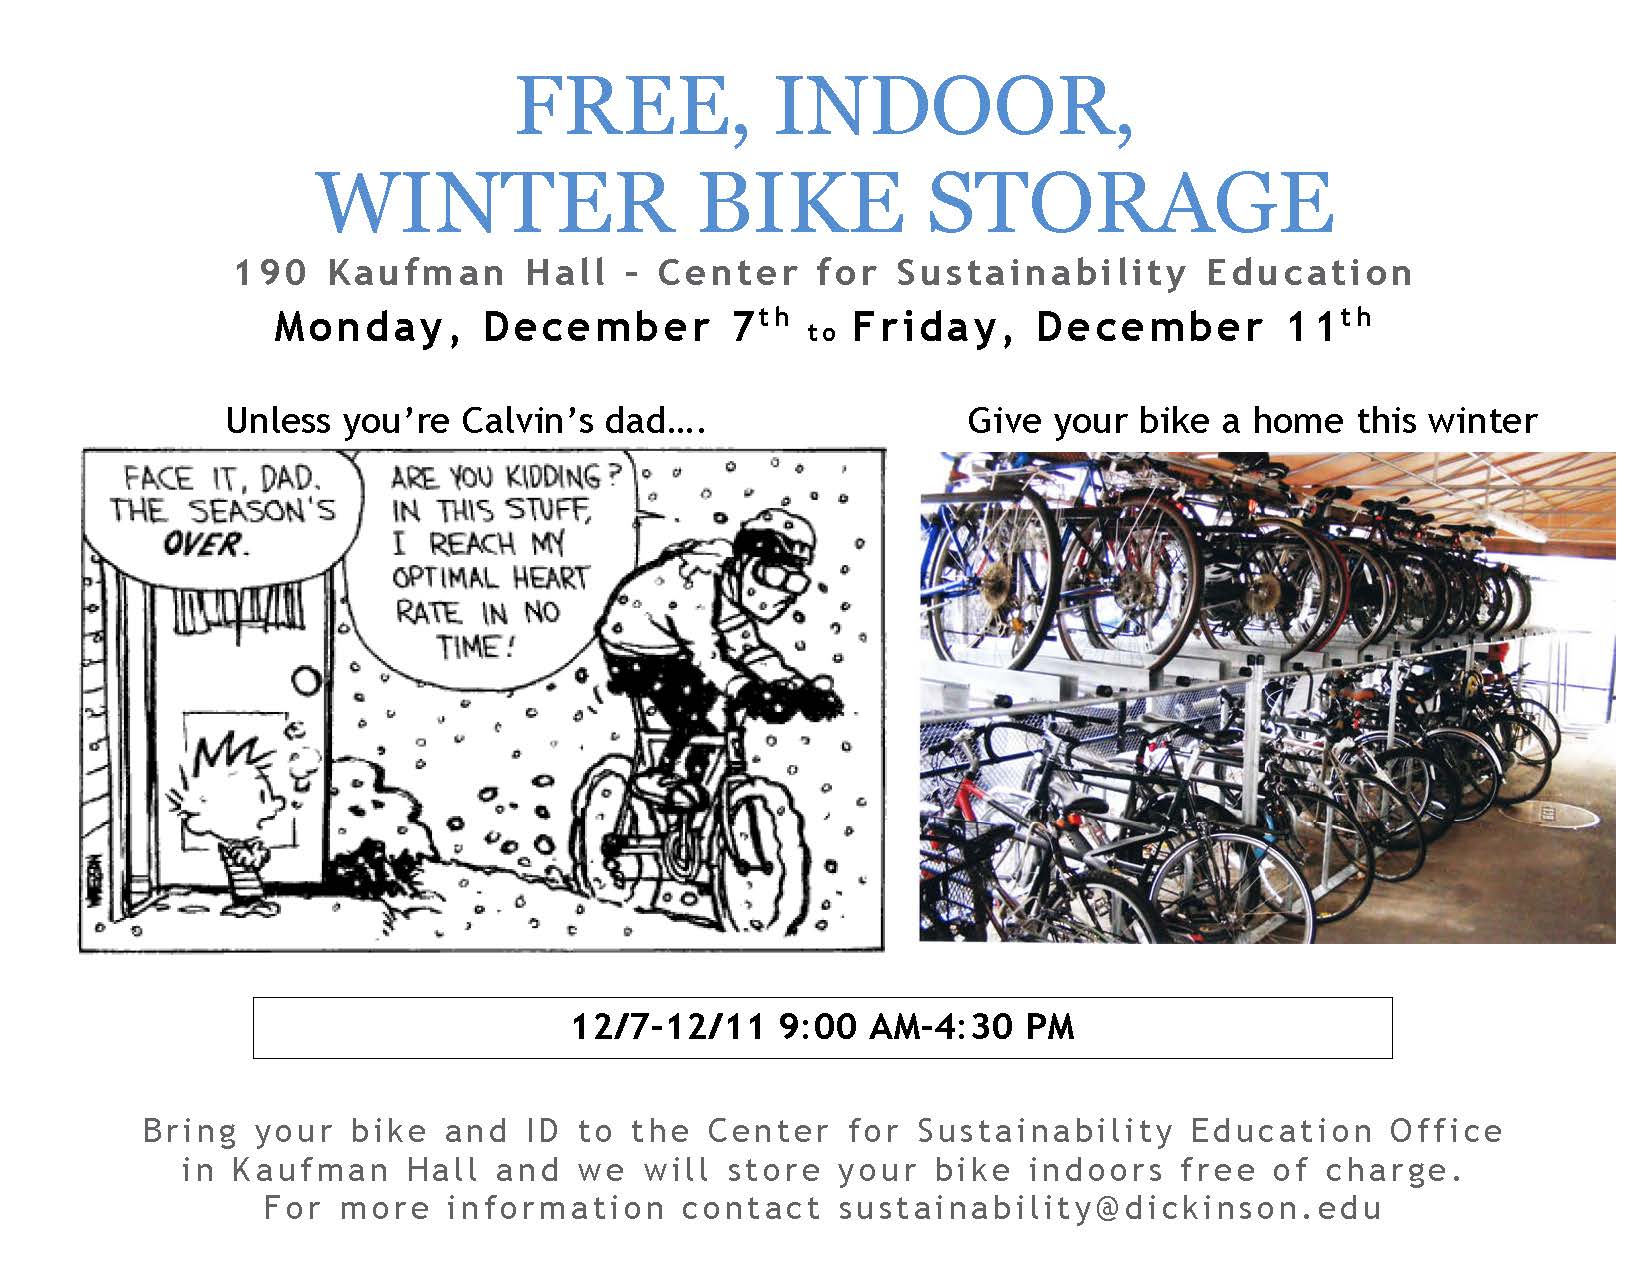 winterbikestorageposter2015Alternate